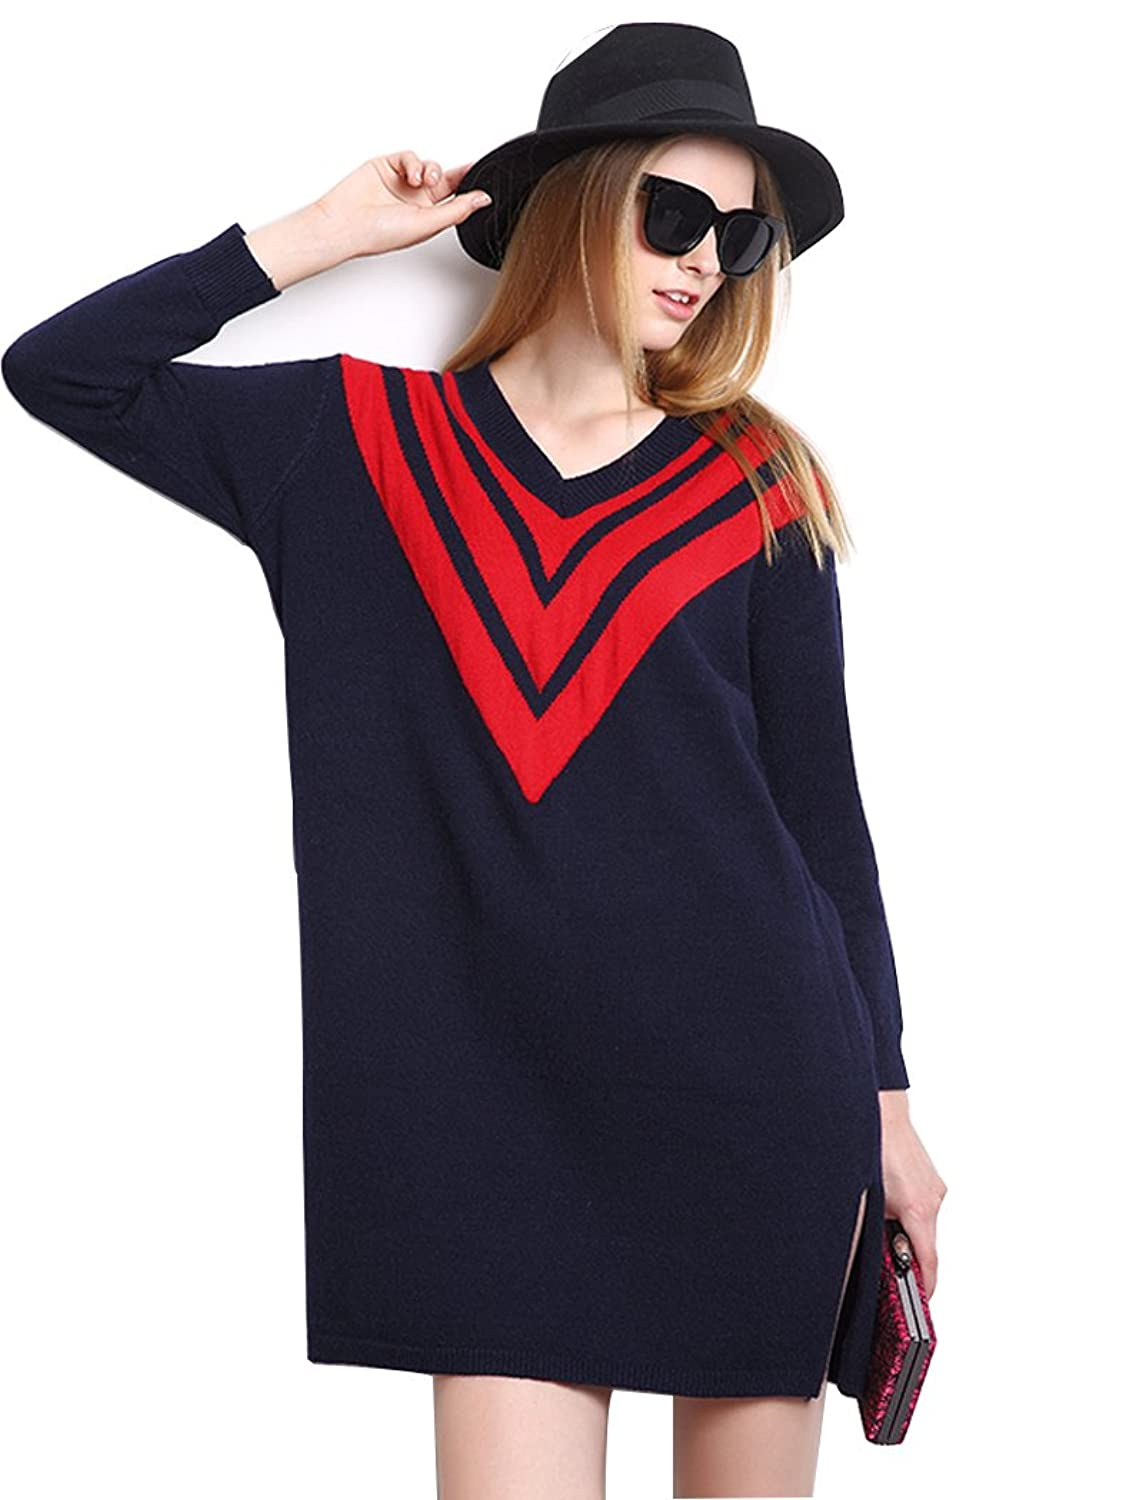 Secrect Armoire Women's Loose V Neck Jacquard Long Sweater Knit Dress